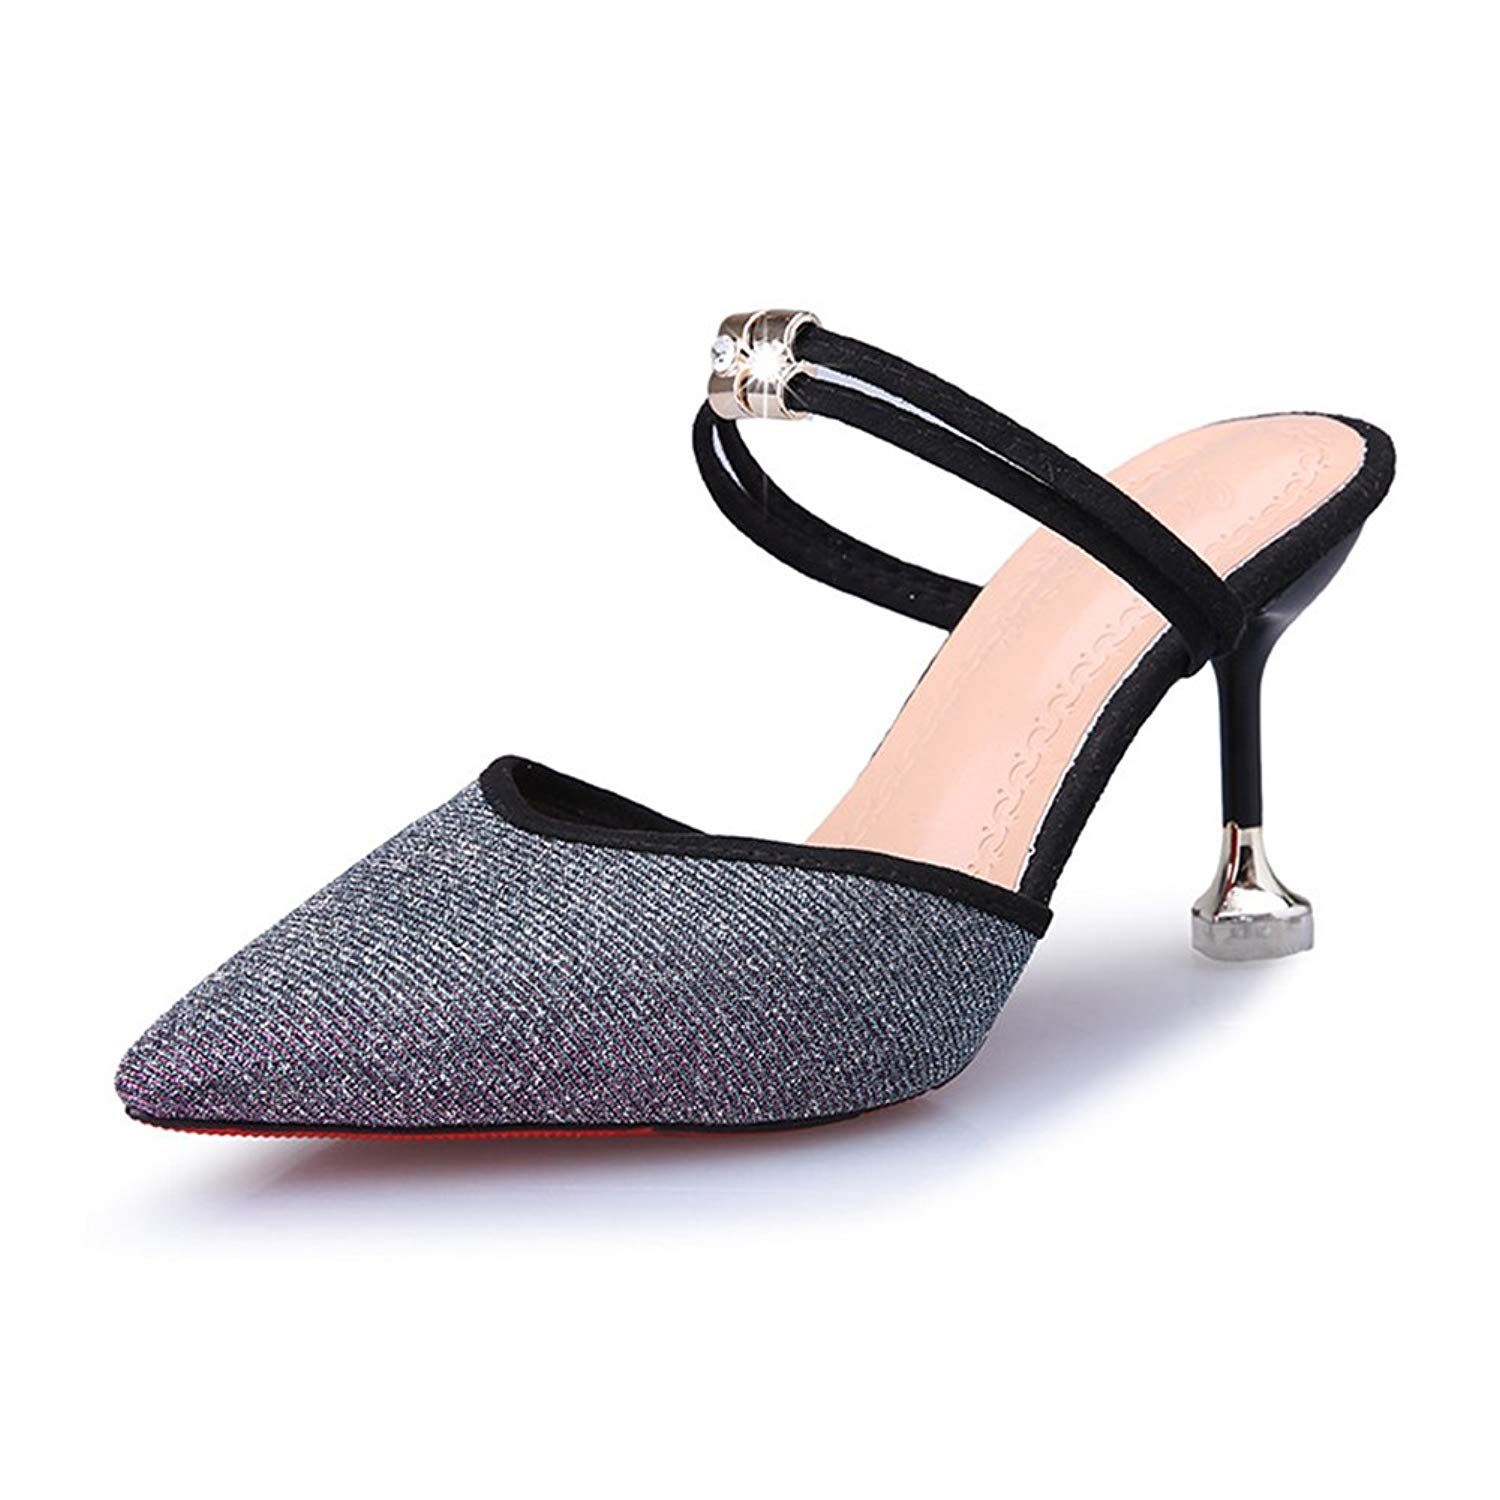 454d18f6f45 Get Quotations · Btrada Women s Sexy Heeled Slide Sandals Pointy Toe Slip  On Ankle Strap Kitten Heel Mules Pumps